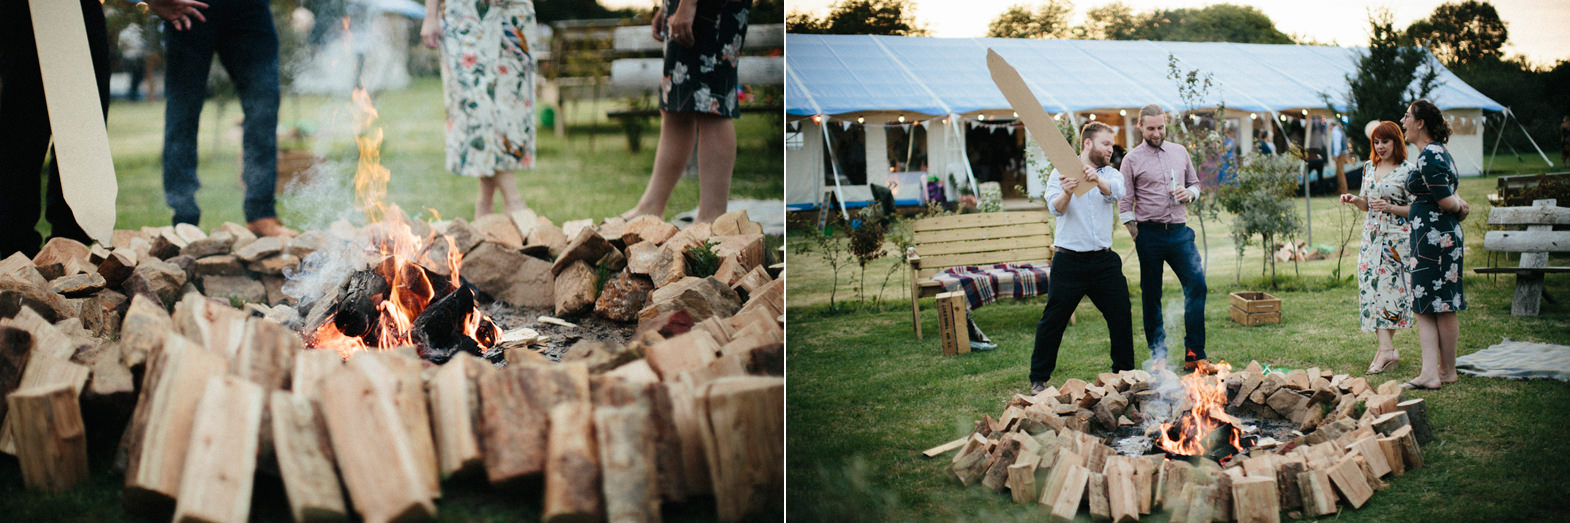 WEDDING PHOTOGRAPHY AT CORNISH TIPIS (122).jpg